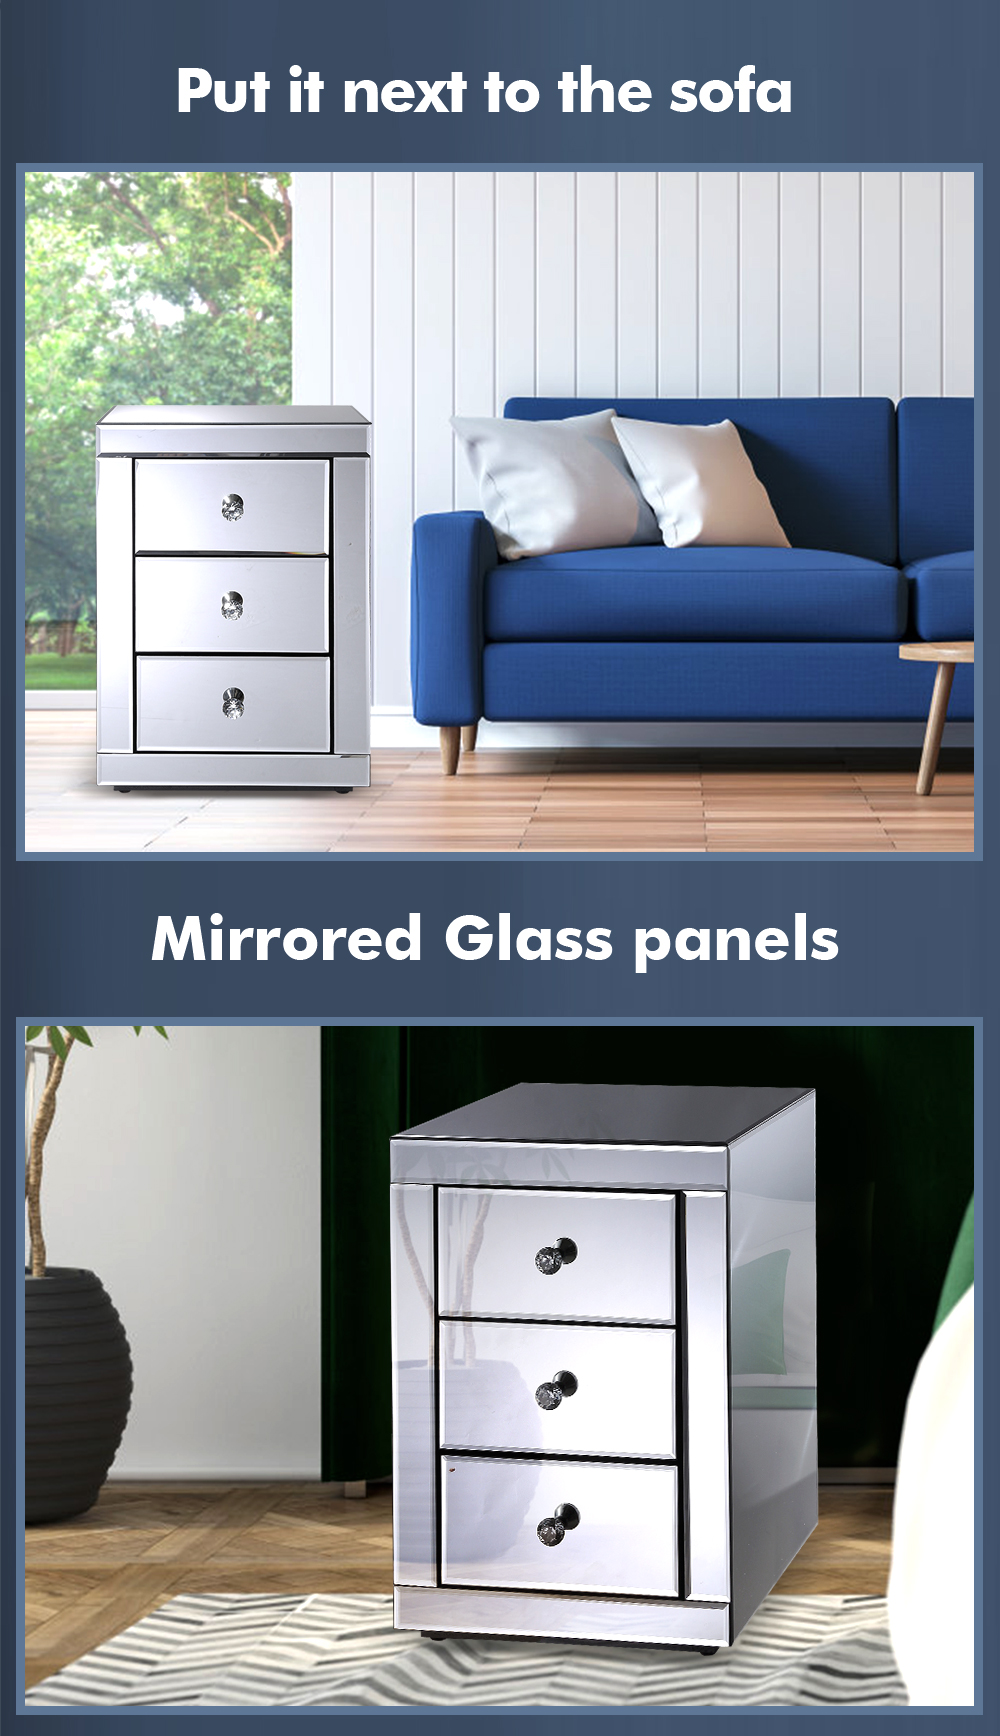 Mirrored Bedside Table With Drawers: Levede Bedside Tables Nightstands Drawers Side Table